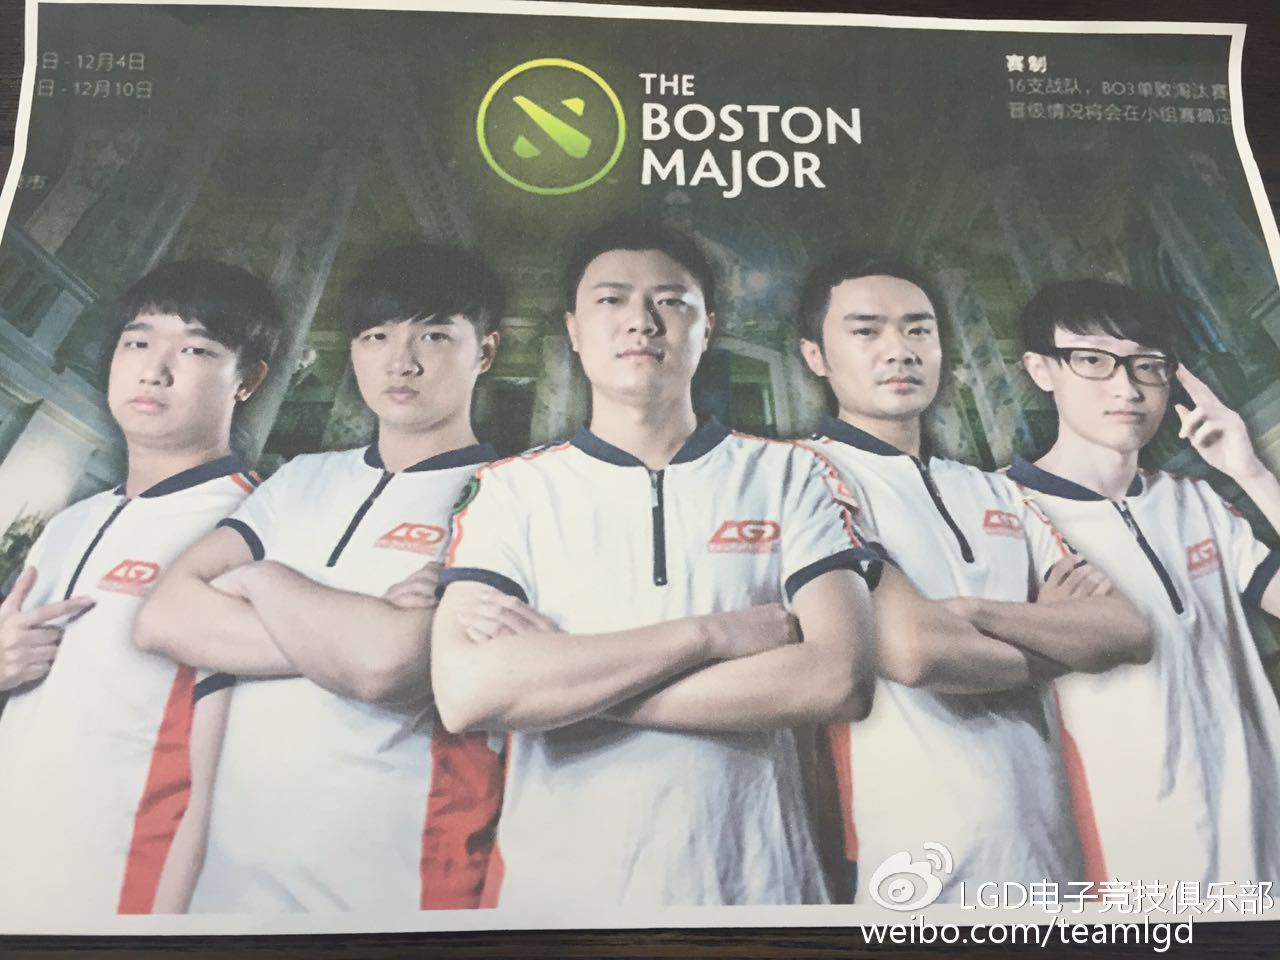 End and DDC to replace Monet and IPC in Boston Major